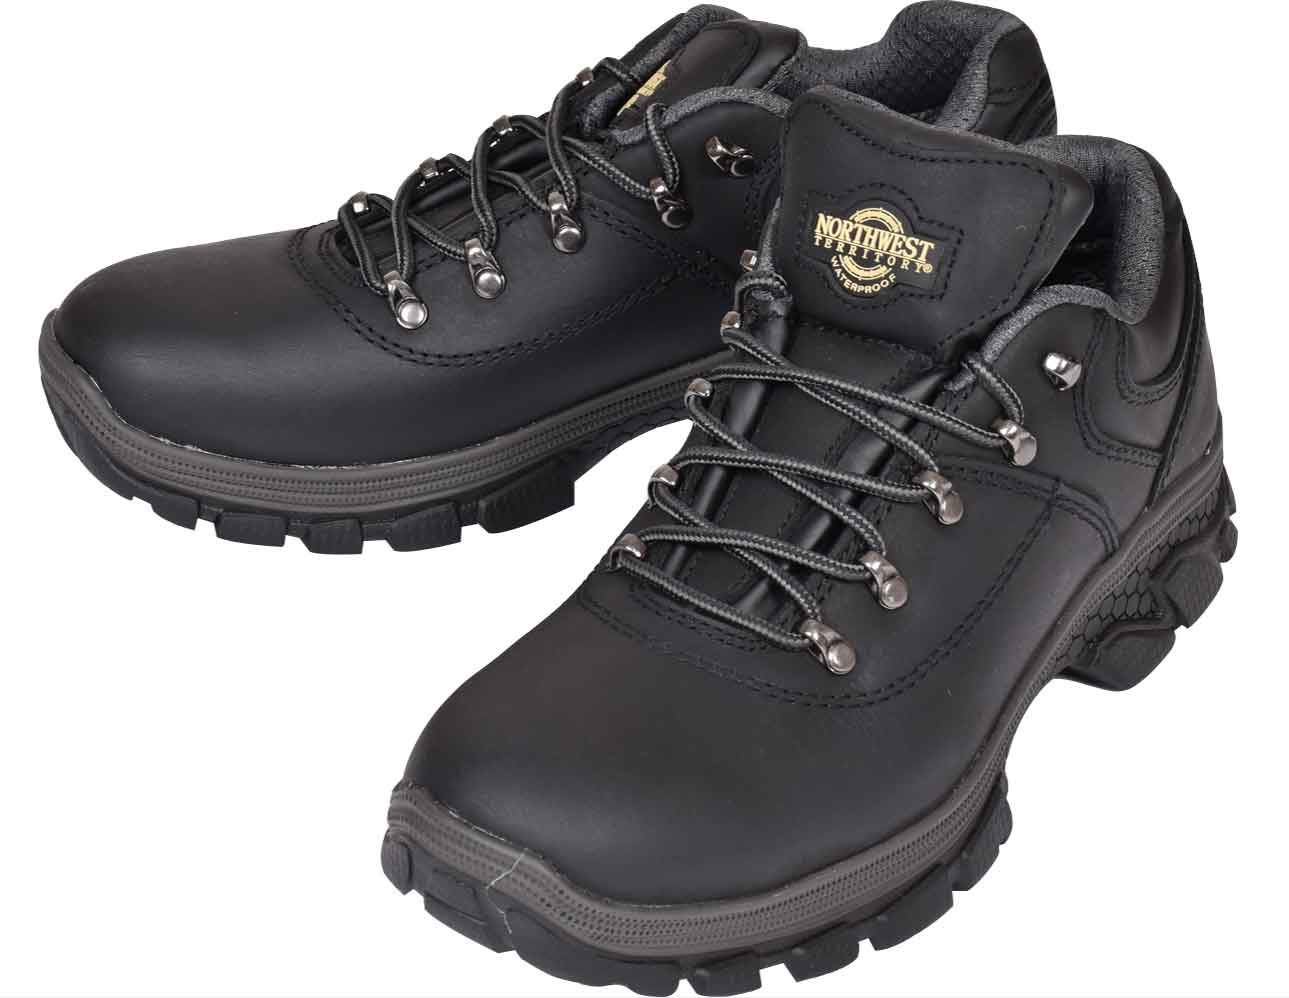 91b6ef7500c Details about NORTHWEST Mens Leather Hiker Trainer Walking Trail Waterproof  Ankle Boots Size